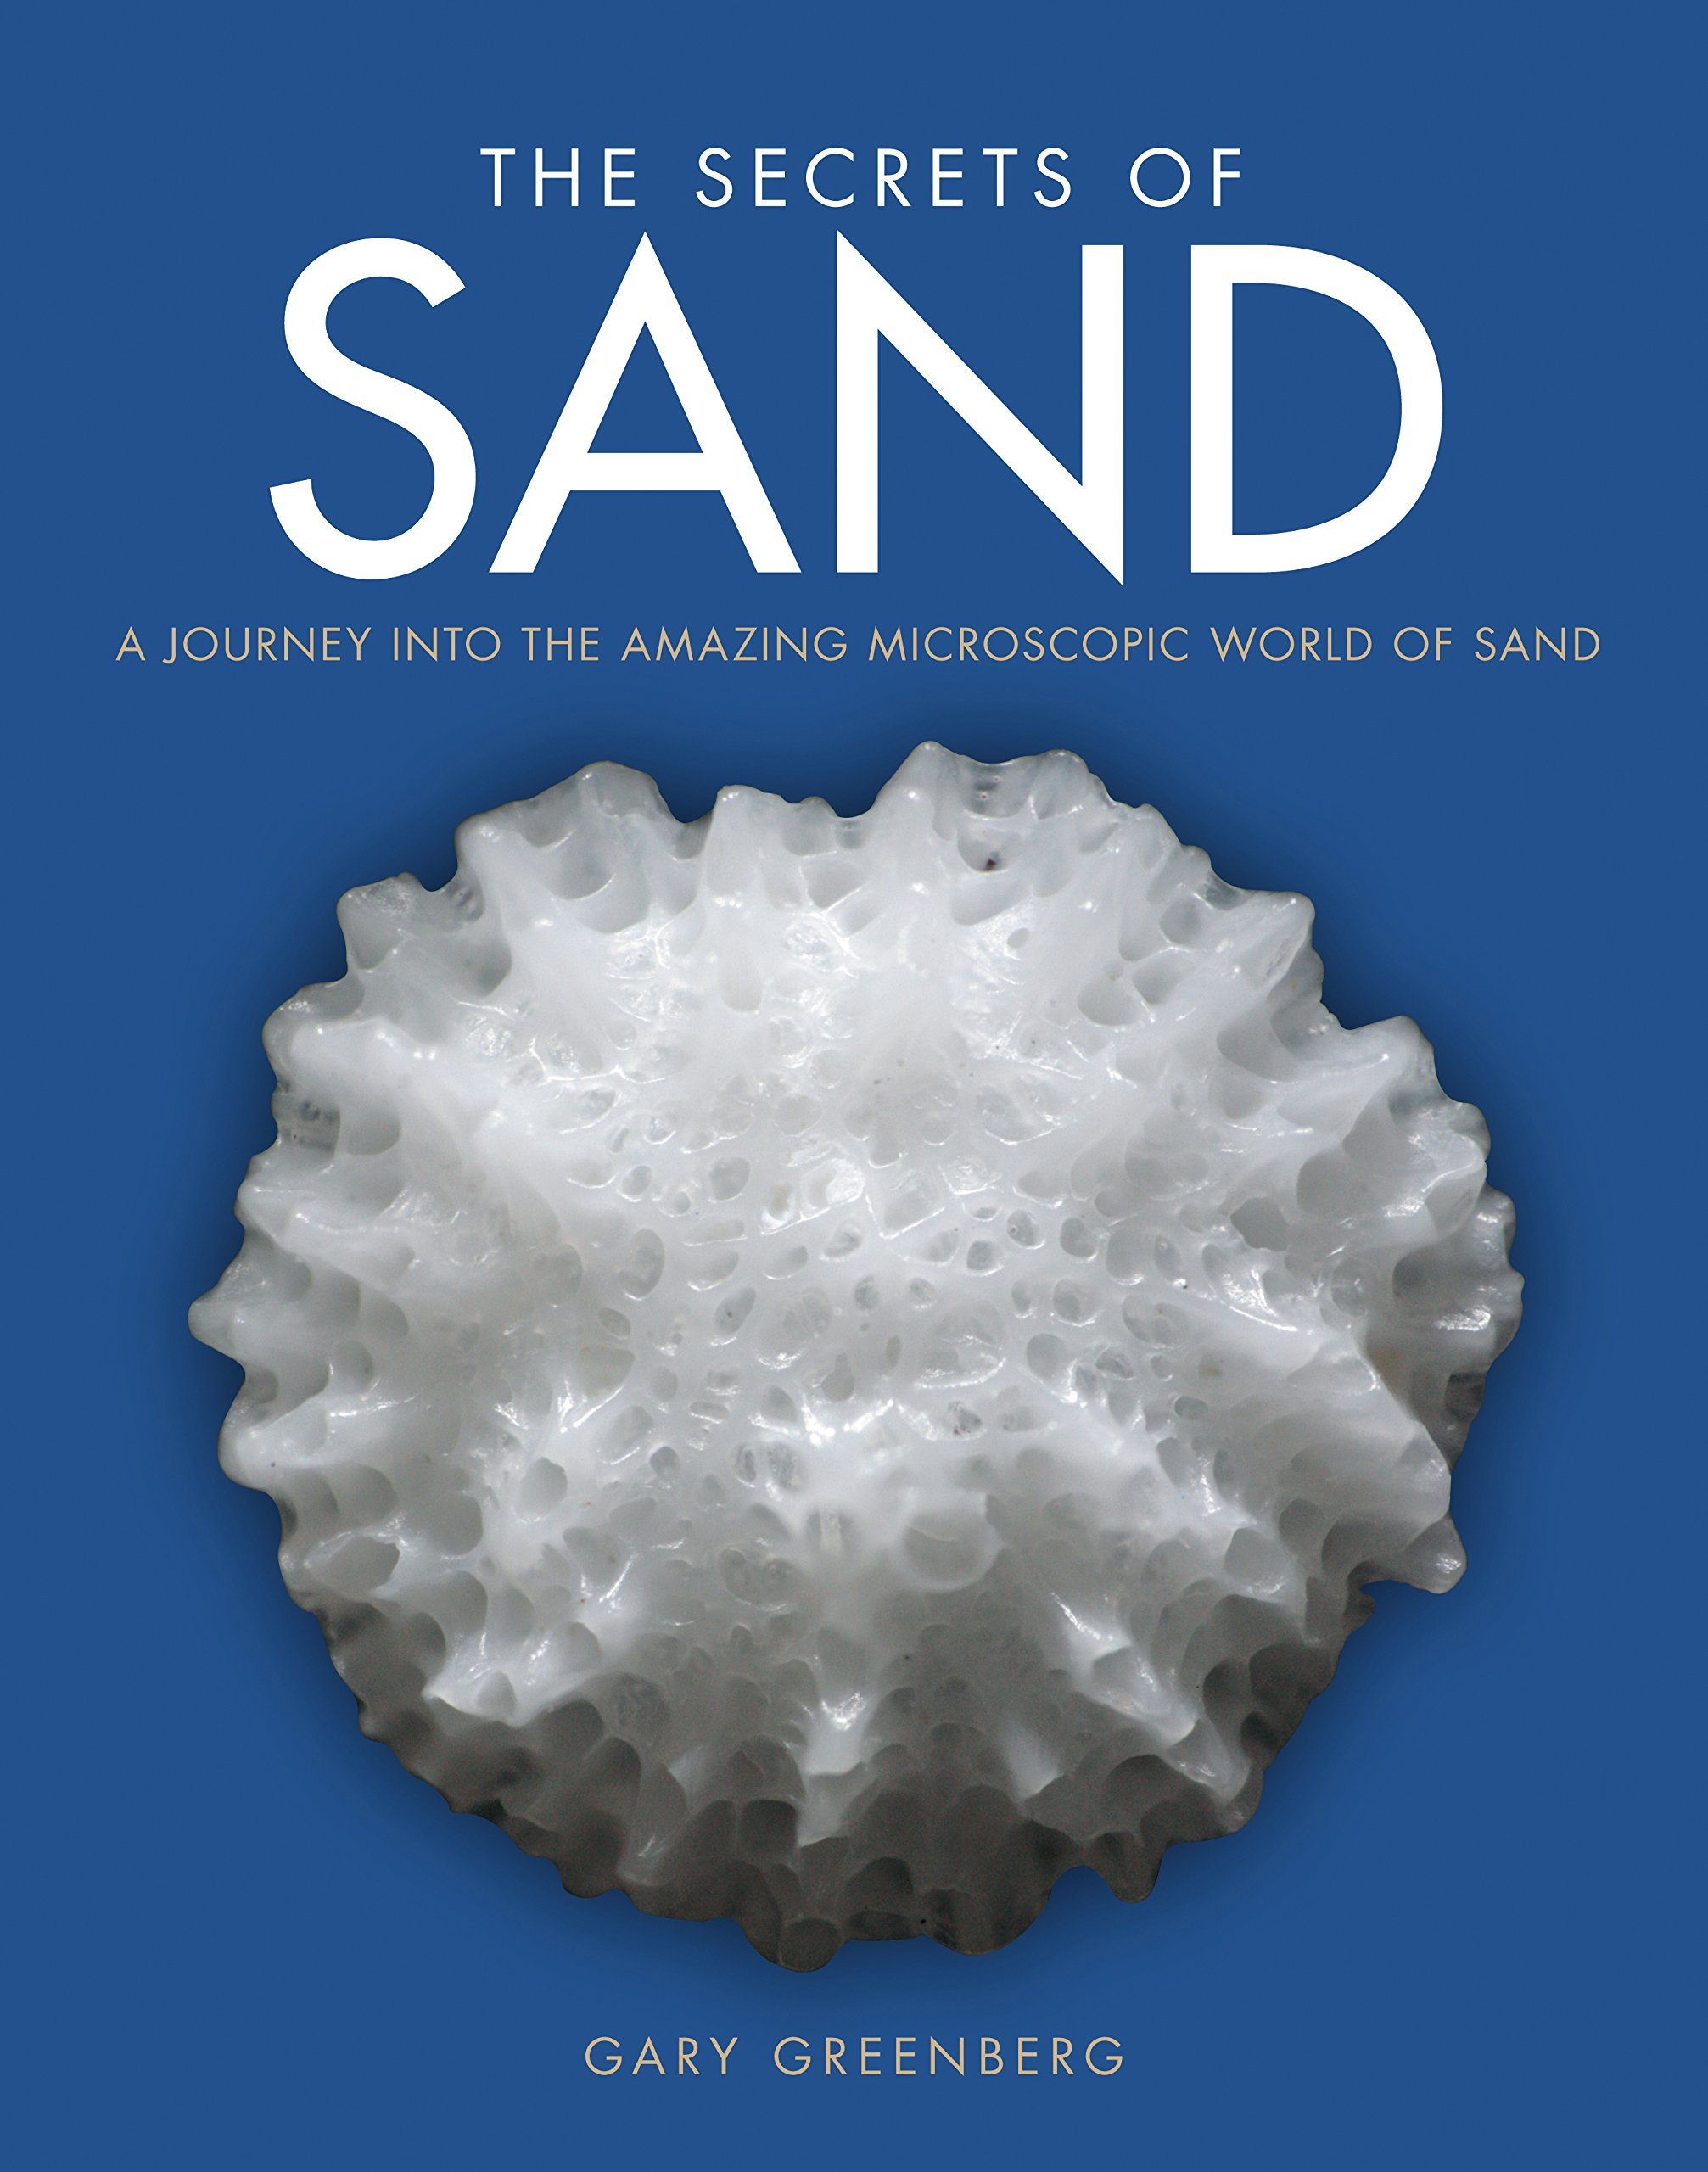 The Secrets of Sand: A Journey into the Amazing Microscopic World of Sand Hardcover – September 21, 2015 Gary Greenberg Carol Kiely Kate Clover Voyageur Press